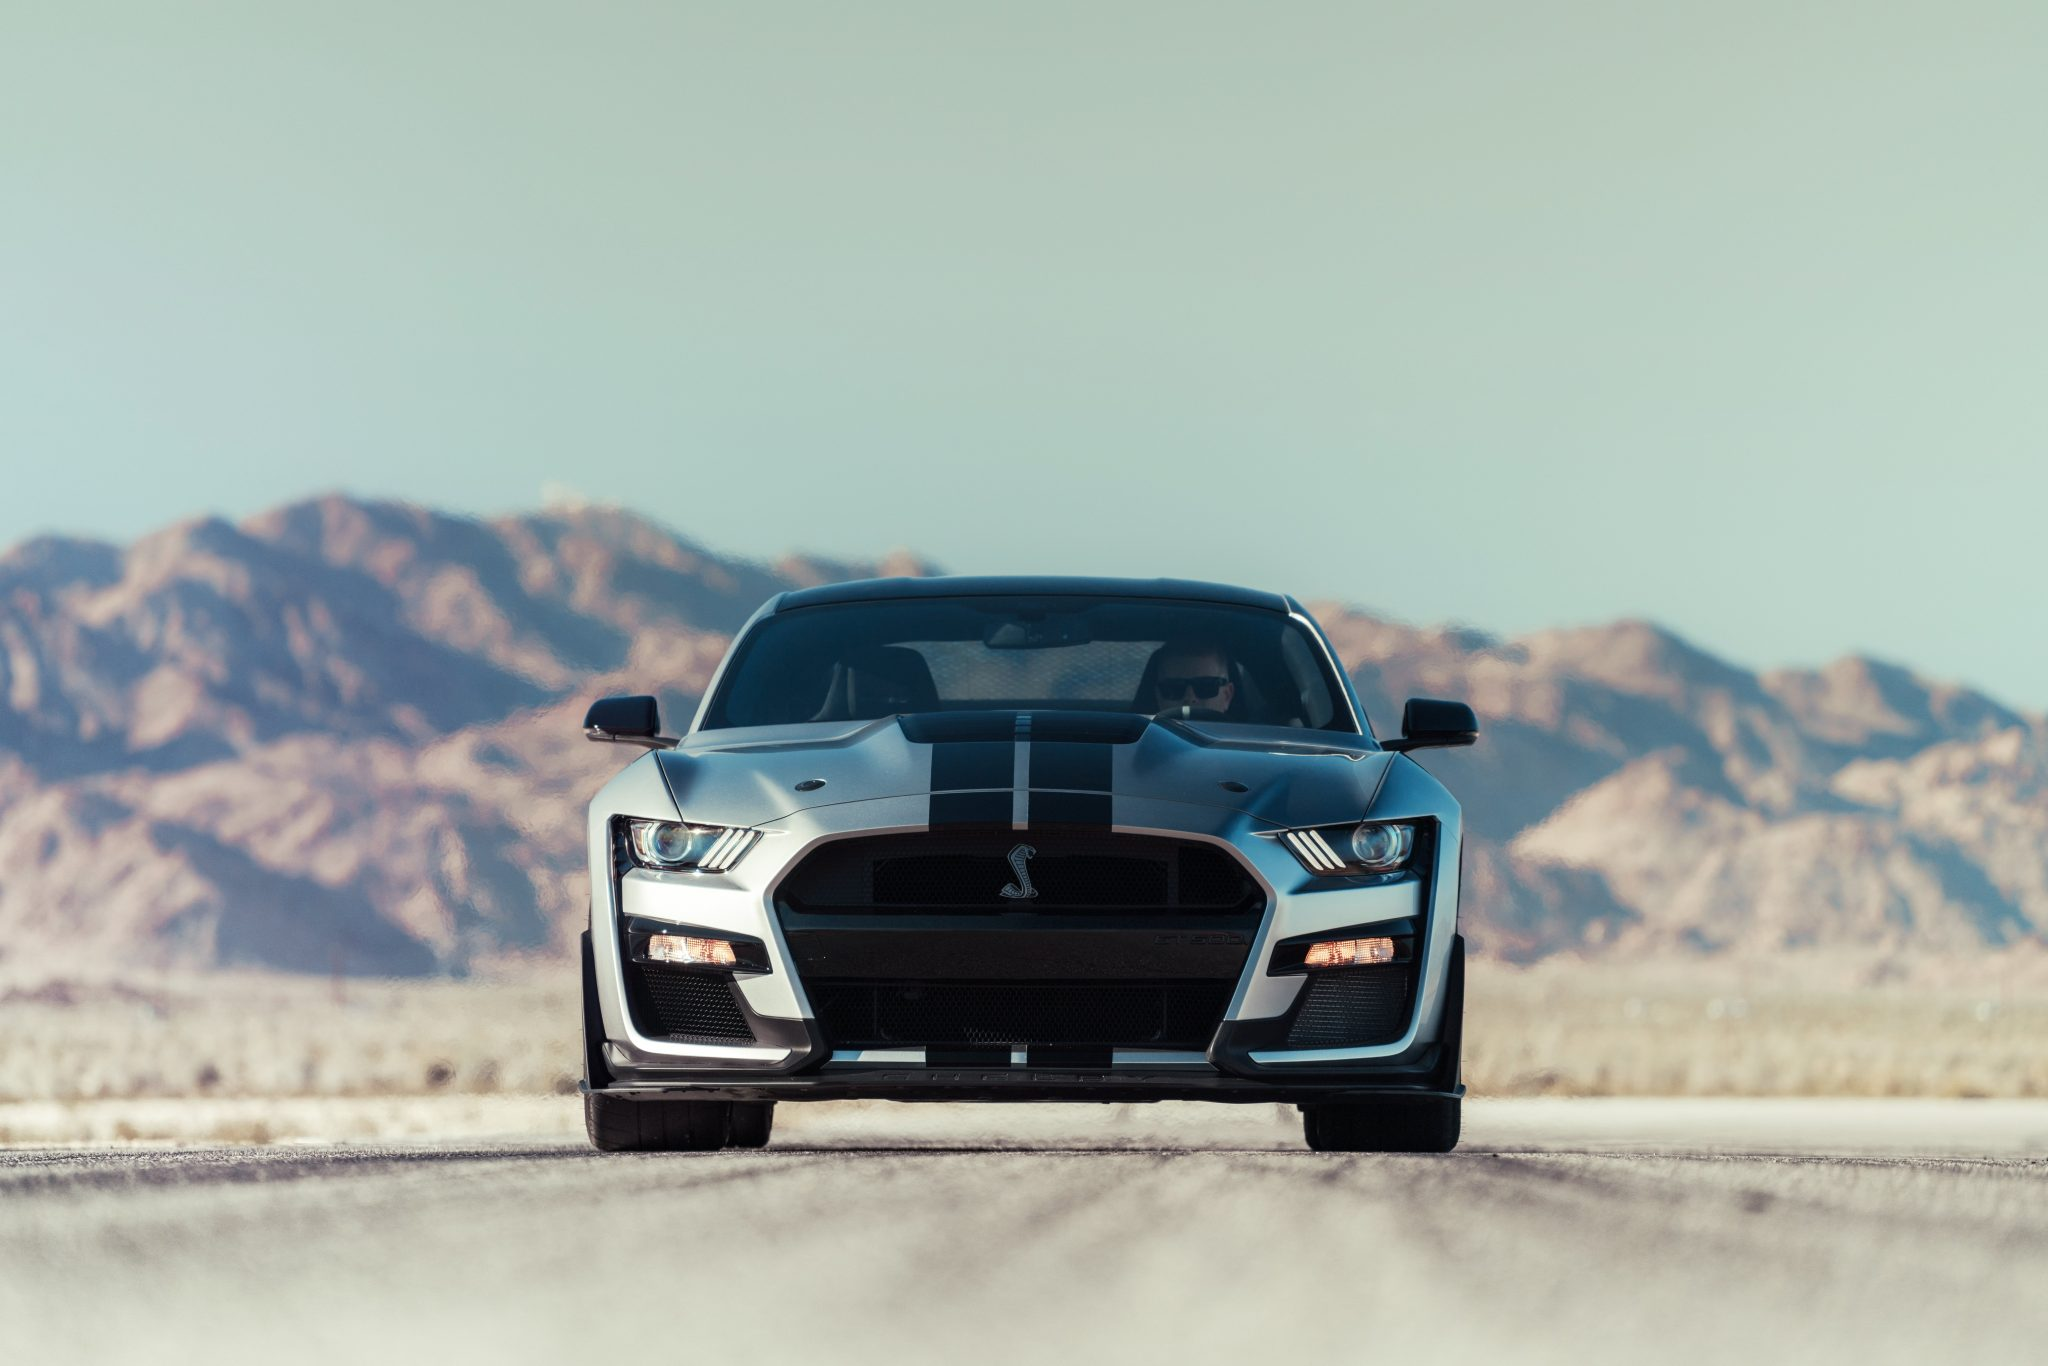 2020 Ford Mustang Shelby Gt500 Goes 0 100 0 In 10 6 Seconds The Lasco Press